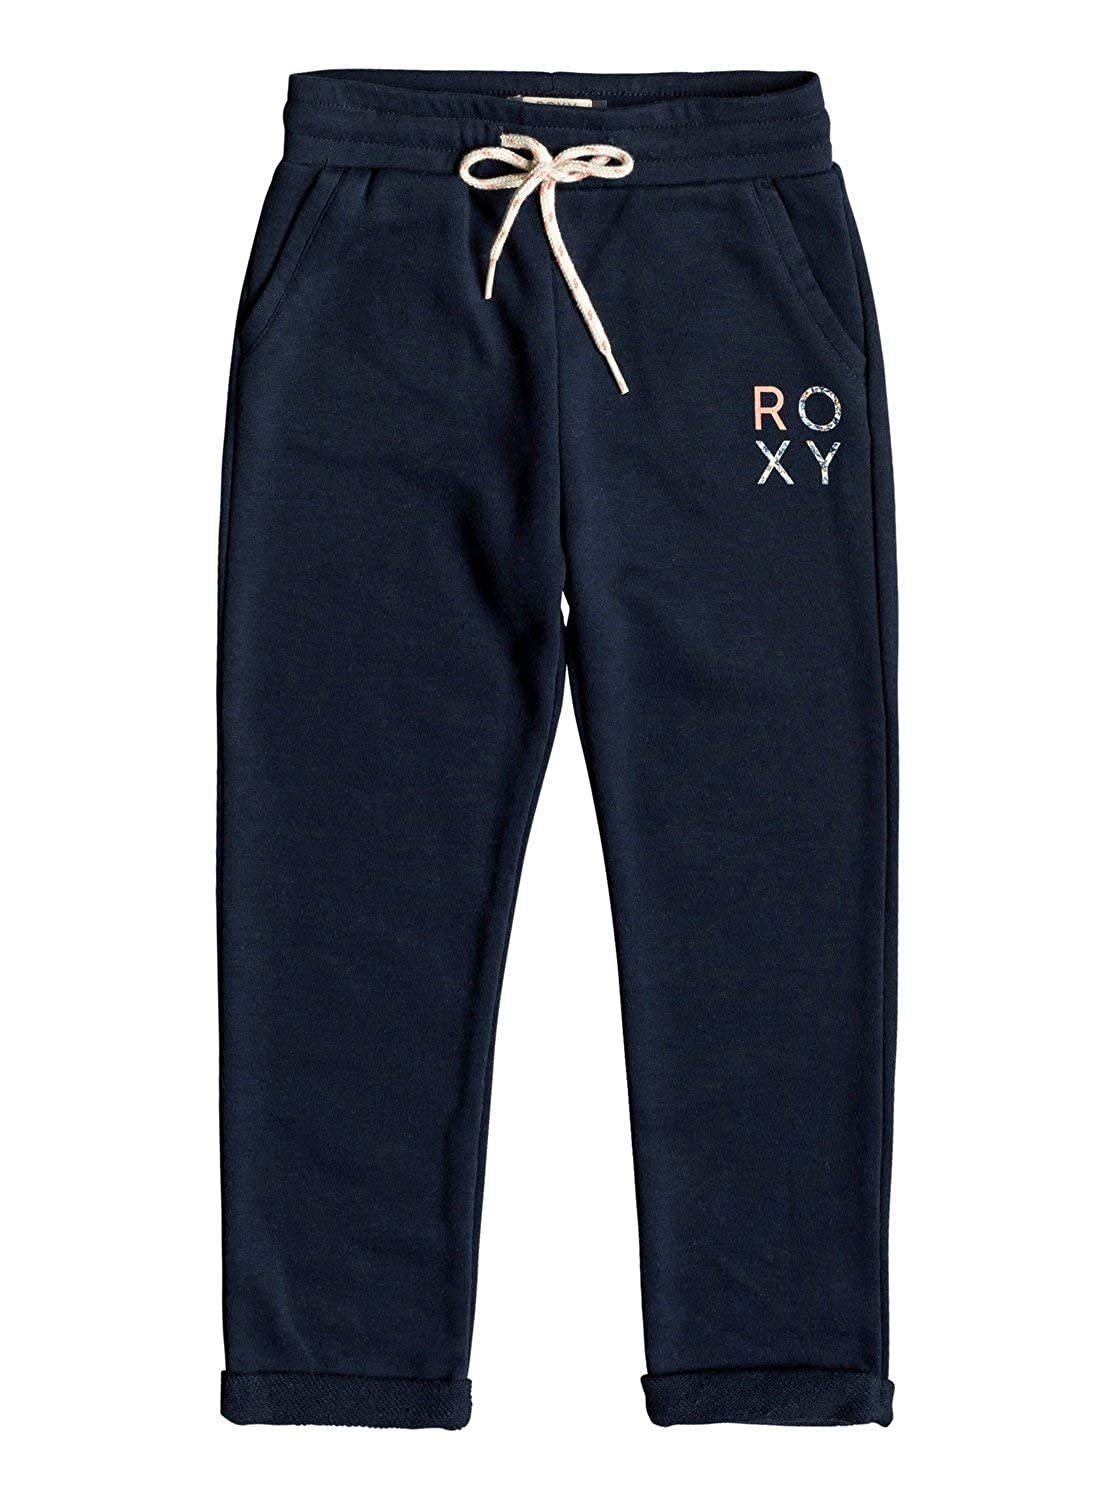 Joggers for Girls 2-7 ERLFB03063 Roxy Let Her Song B